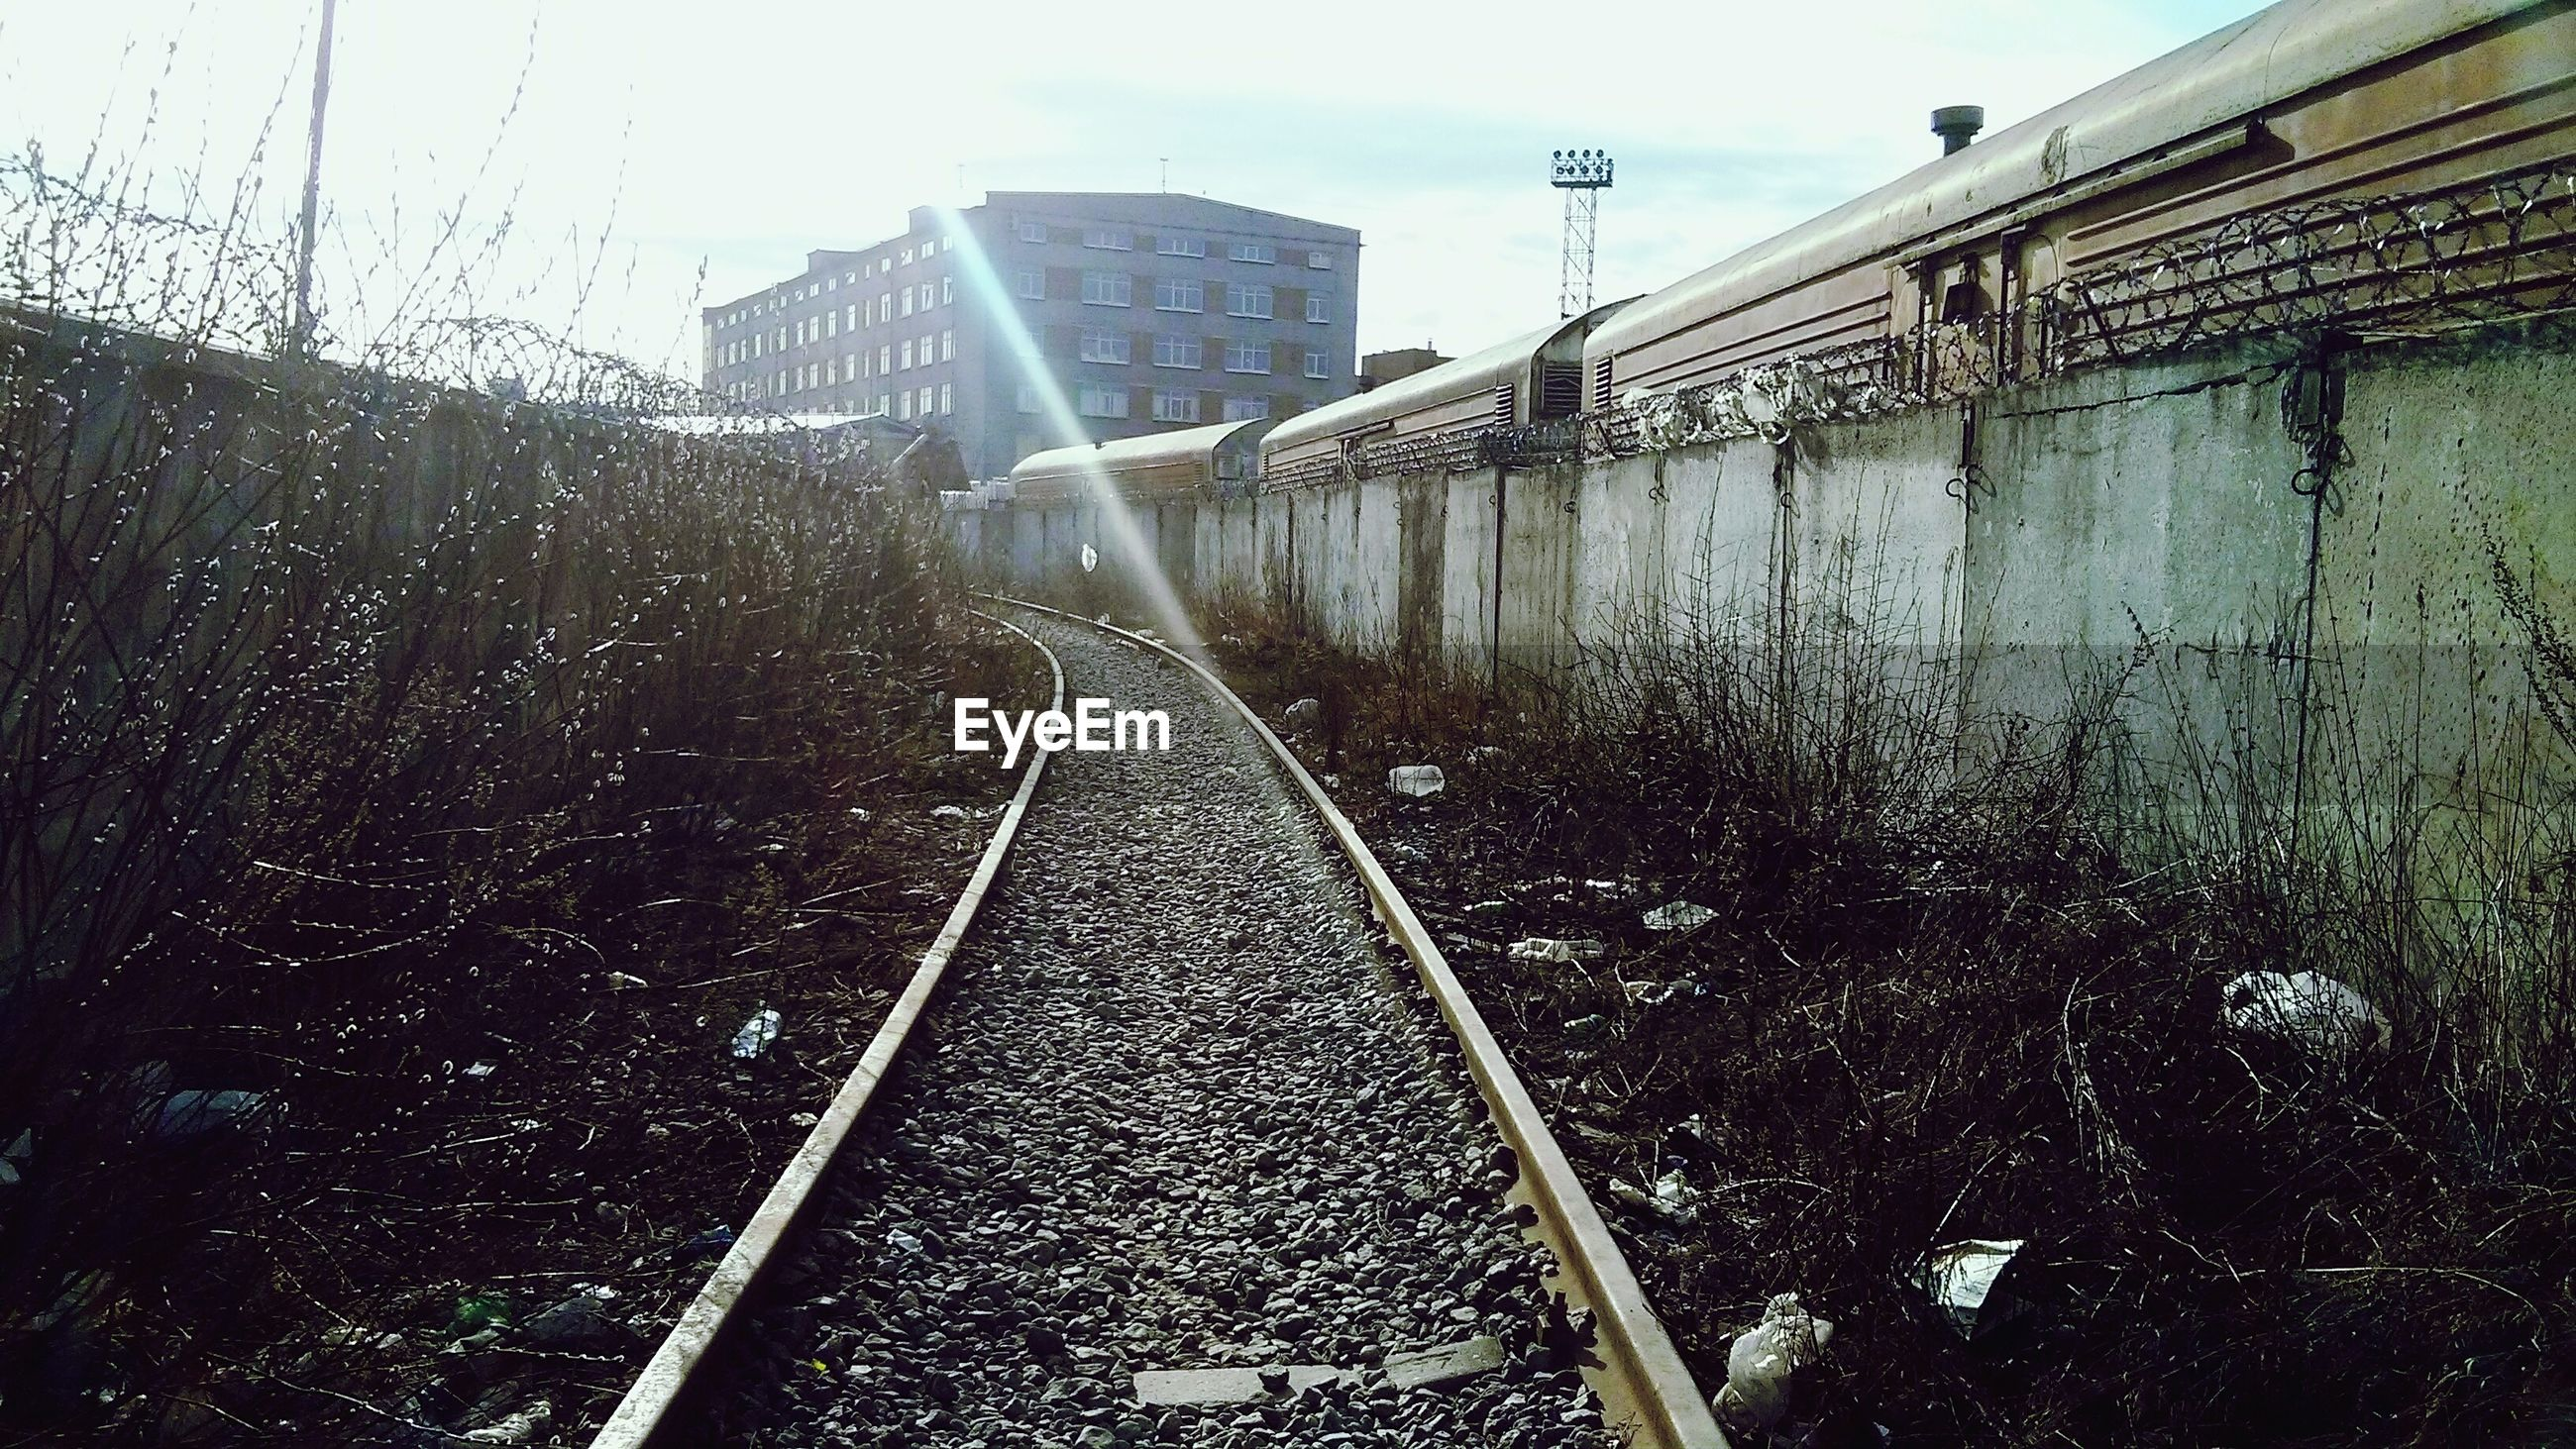 railroad track, transportation, built structure, architecture, rail transportation, connection, the way forward, diminishing perspective, sky, city, building exterior, bridge - man made structure, vanishing point, railway track, public transportation, clear sky, day, water, outdoors, no people